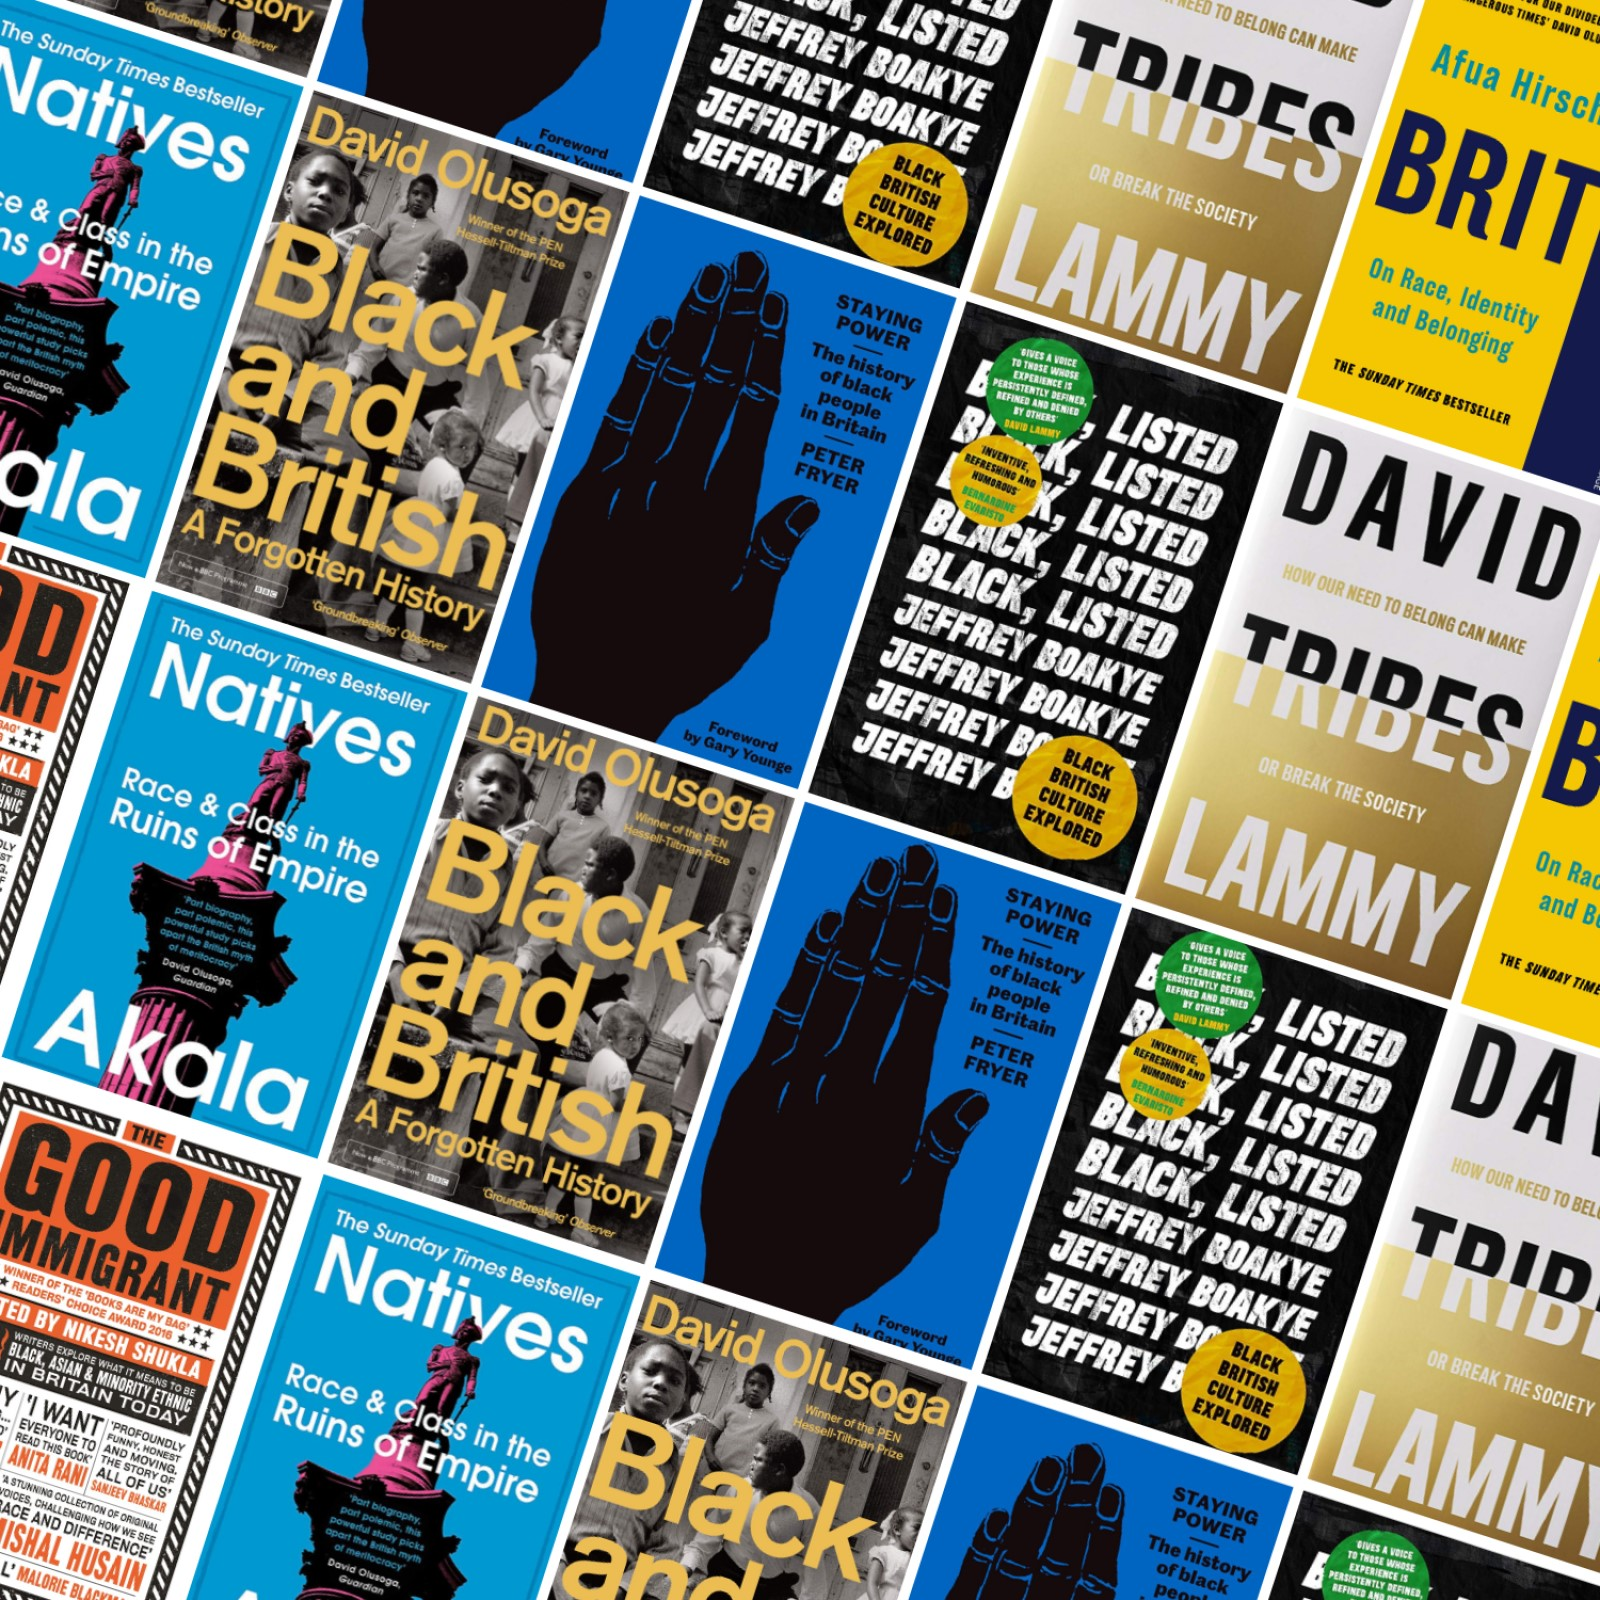 Books about being Black & British